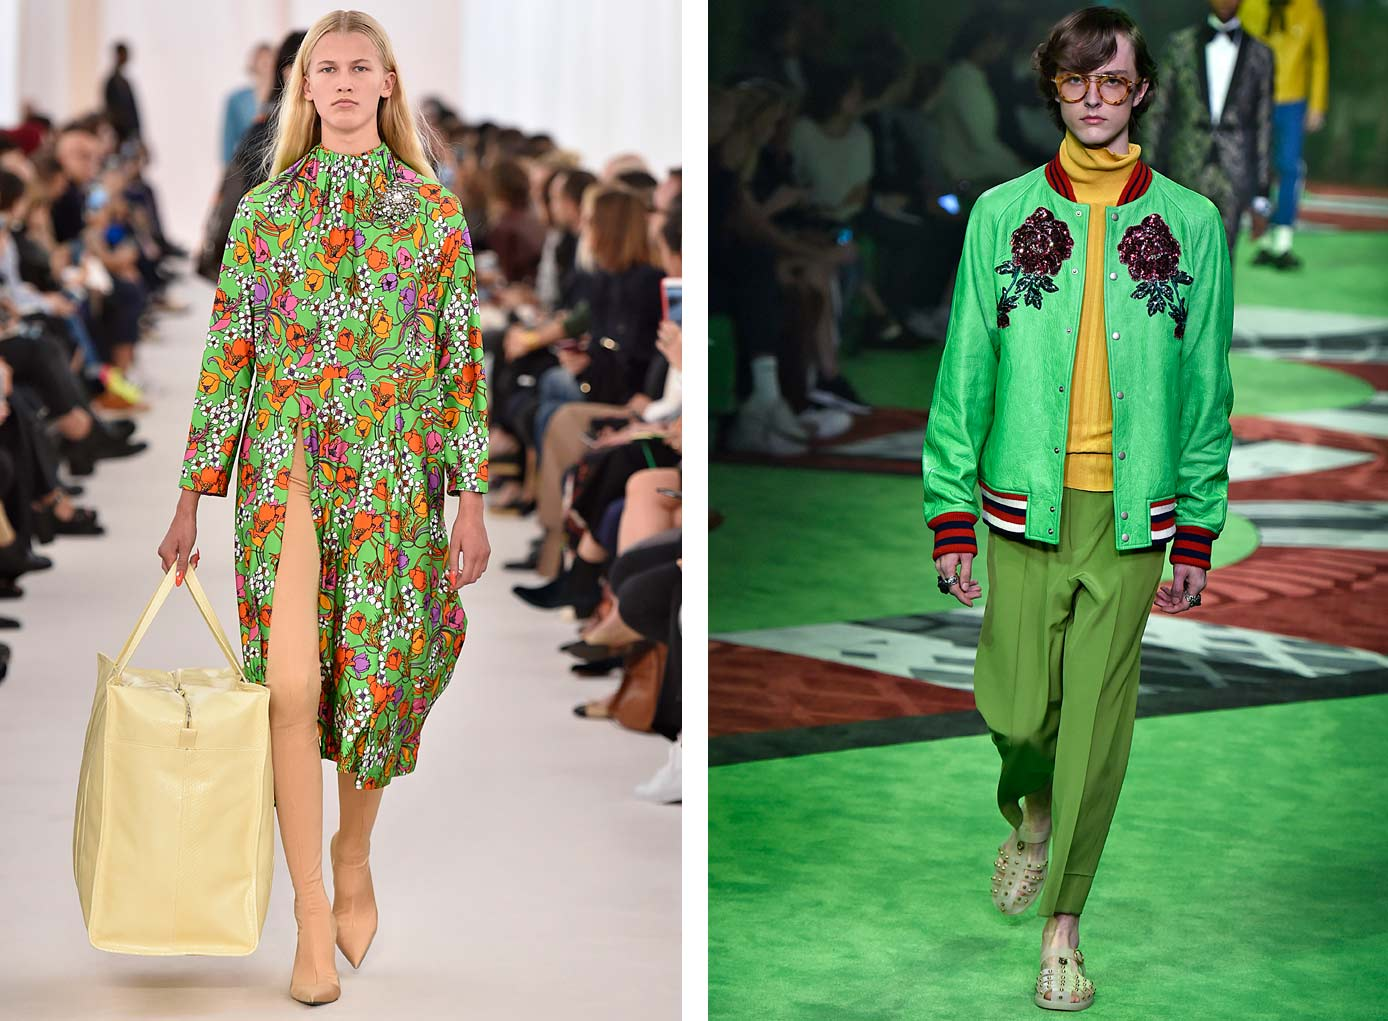 SS 2017 by Balenciaga and Gucci - images courtesy of FashionSnoops